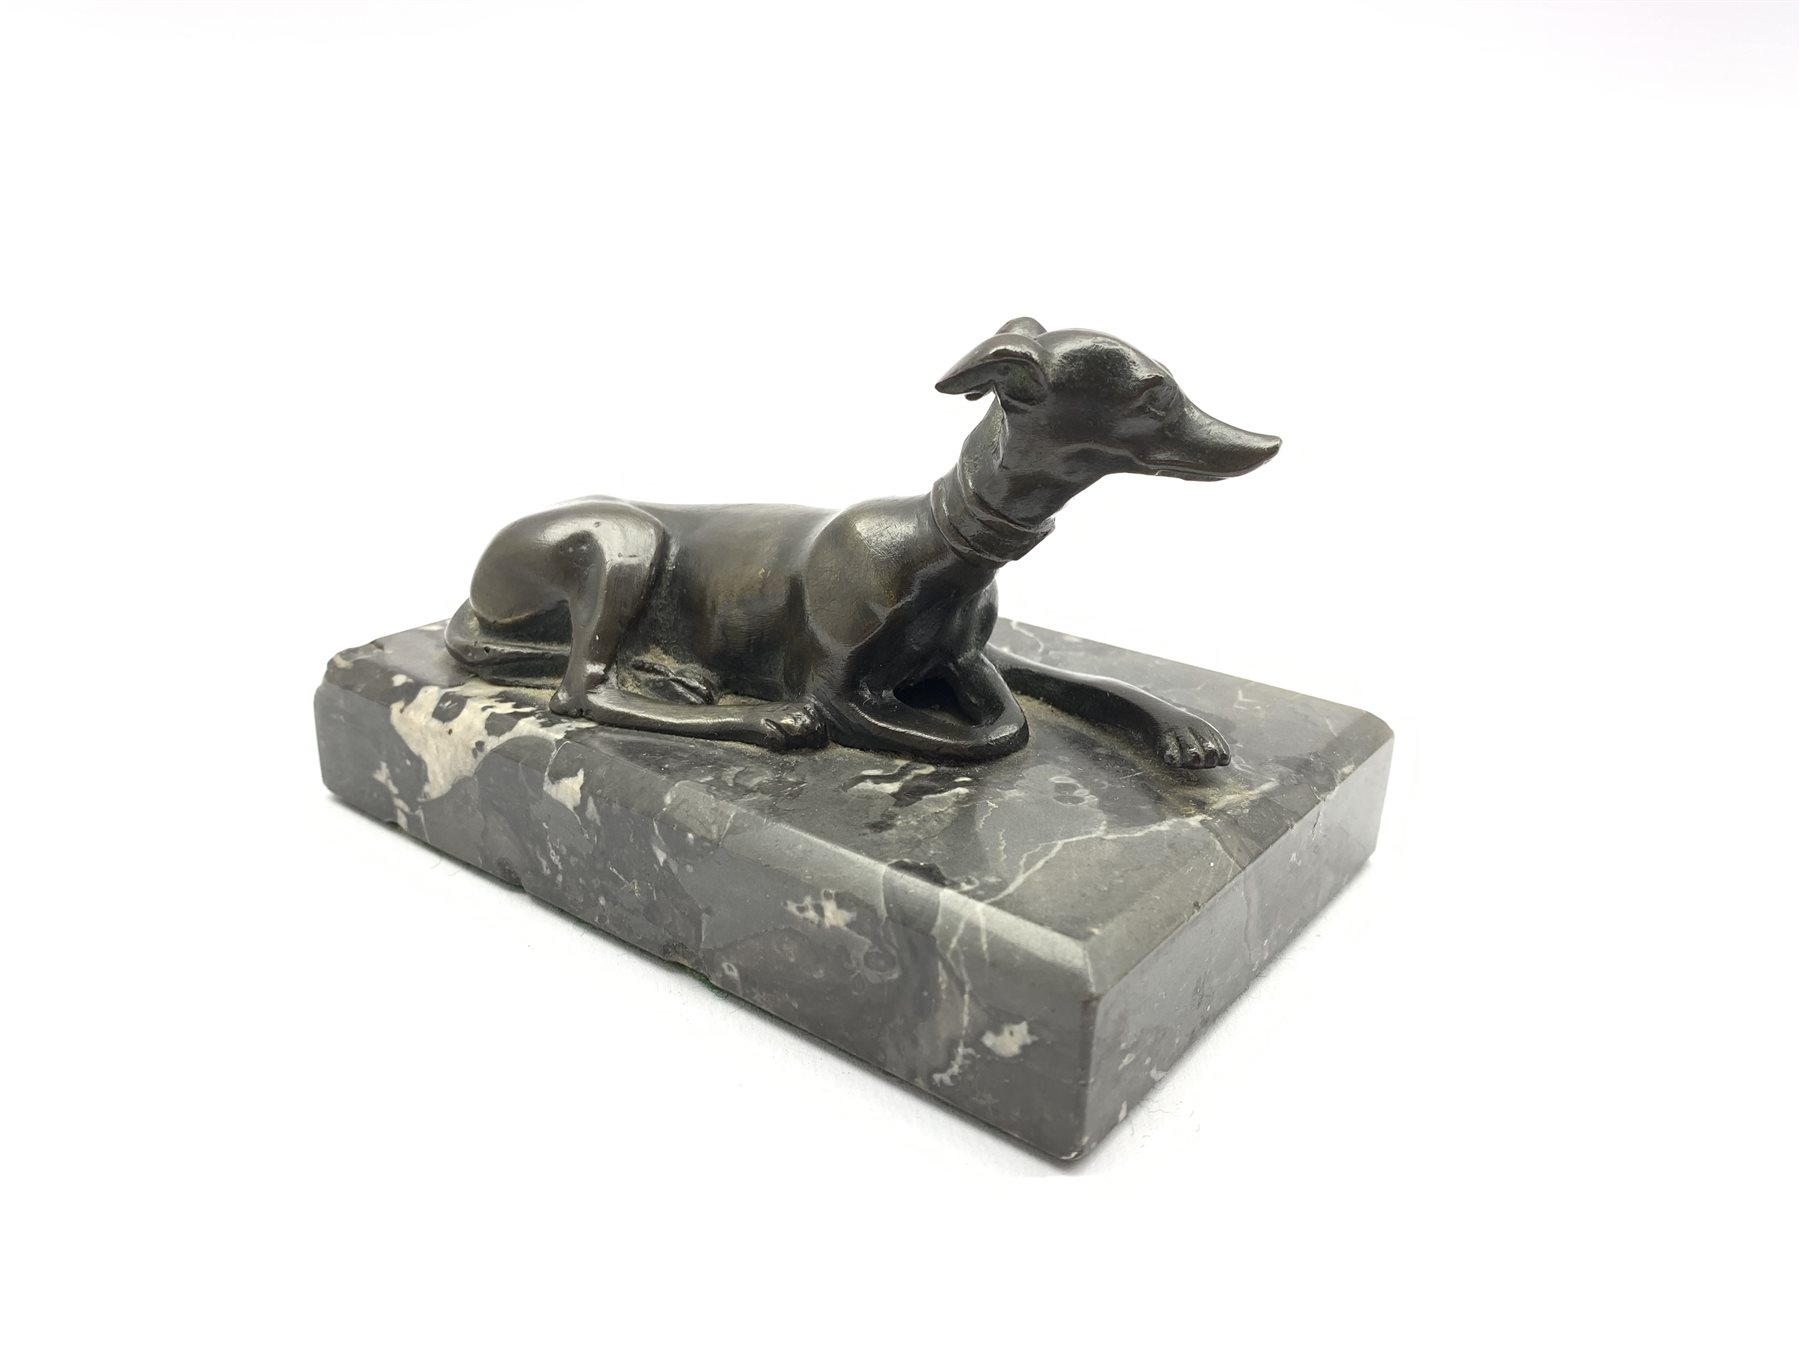 Desk paperweight in the form of a bronze recumbent greyhound on a veined grey marble base W13cm